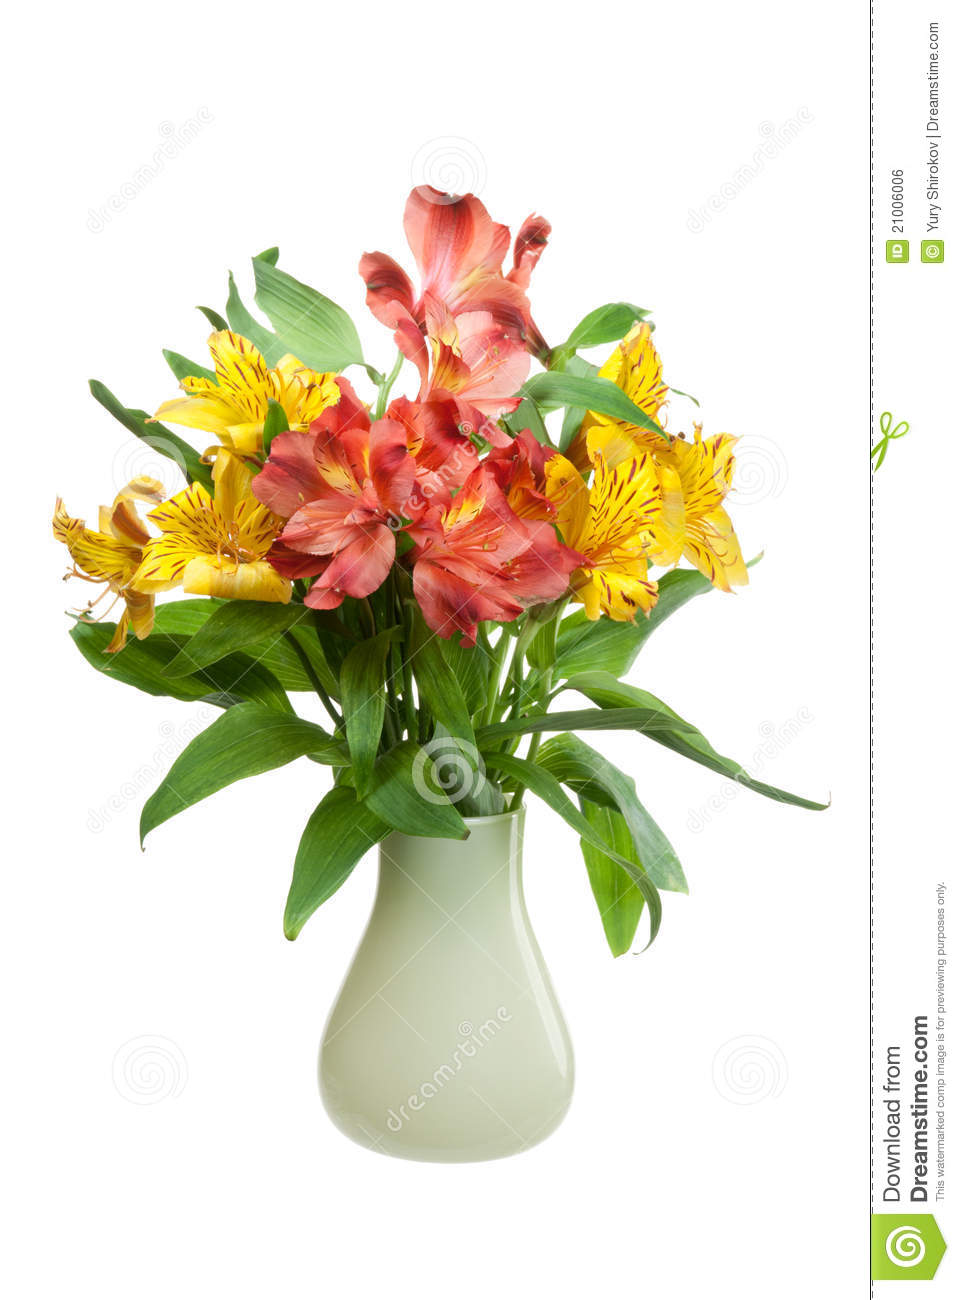 Bunch flowers images free clipart freeuse stock Bunch Of Flowers Royalty Free Stock Image - Image: 21006006 clipart freeuse stock